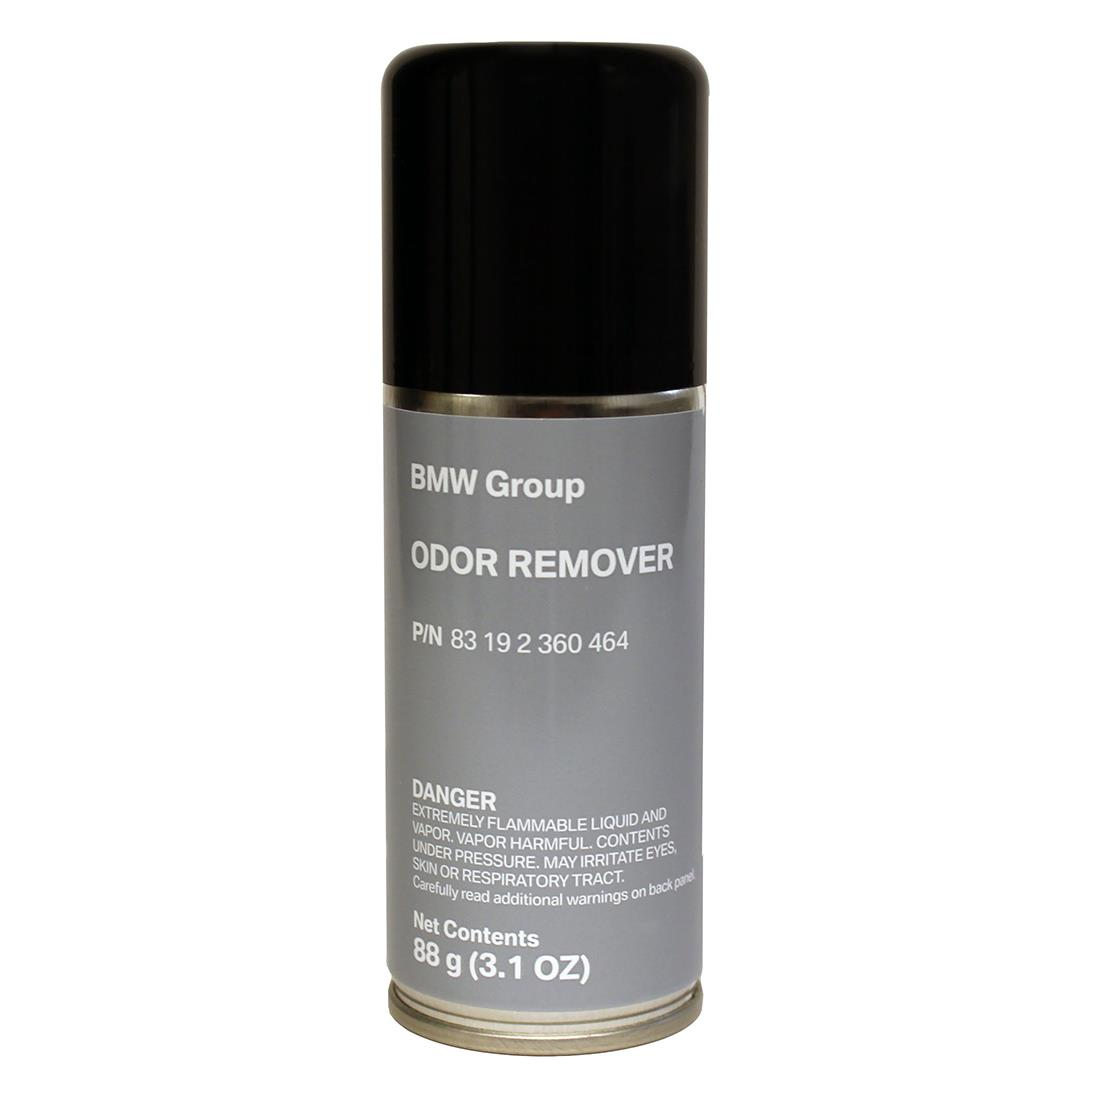 BMW Group Odor Remover